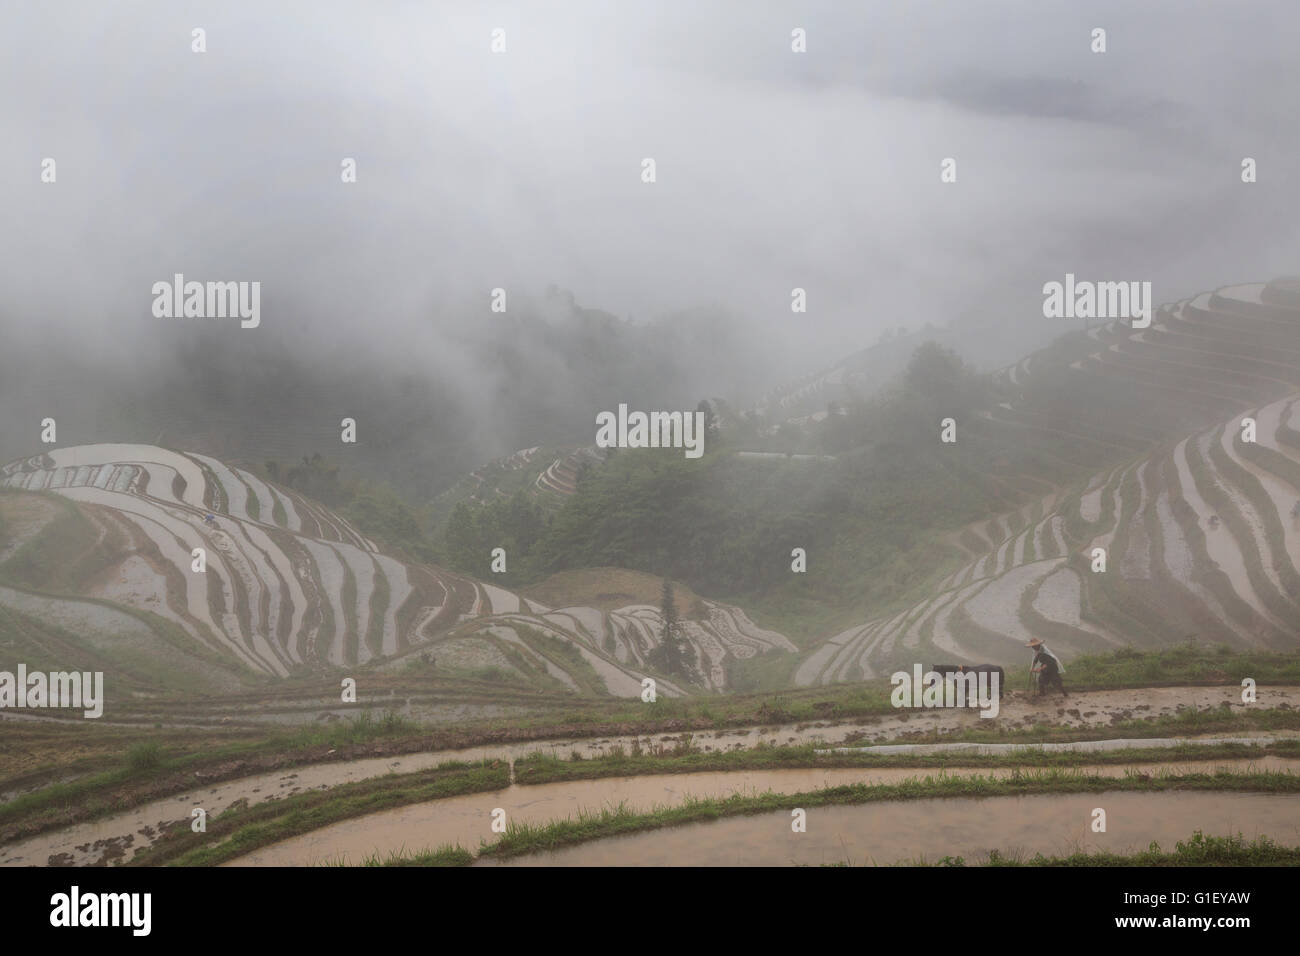 View of Longji rice terraces in Guangxi province at raining time, China - Stock Image